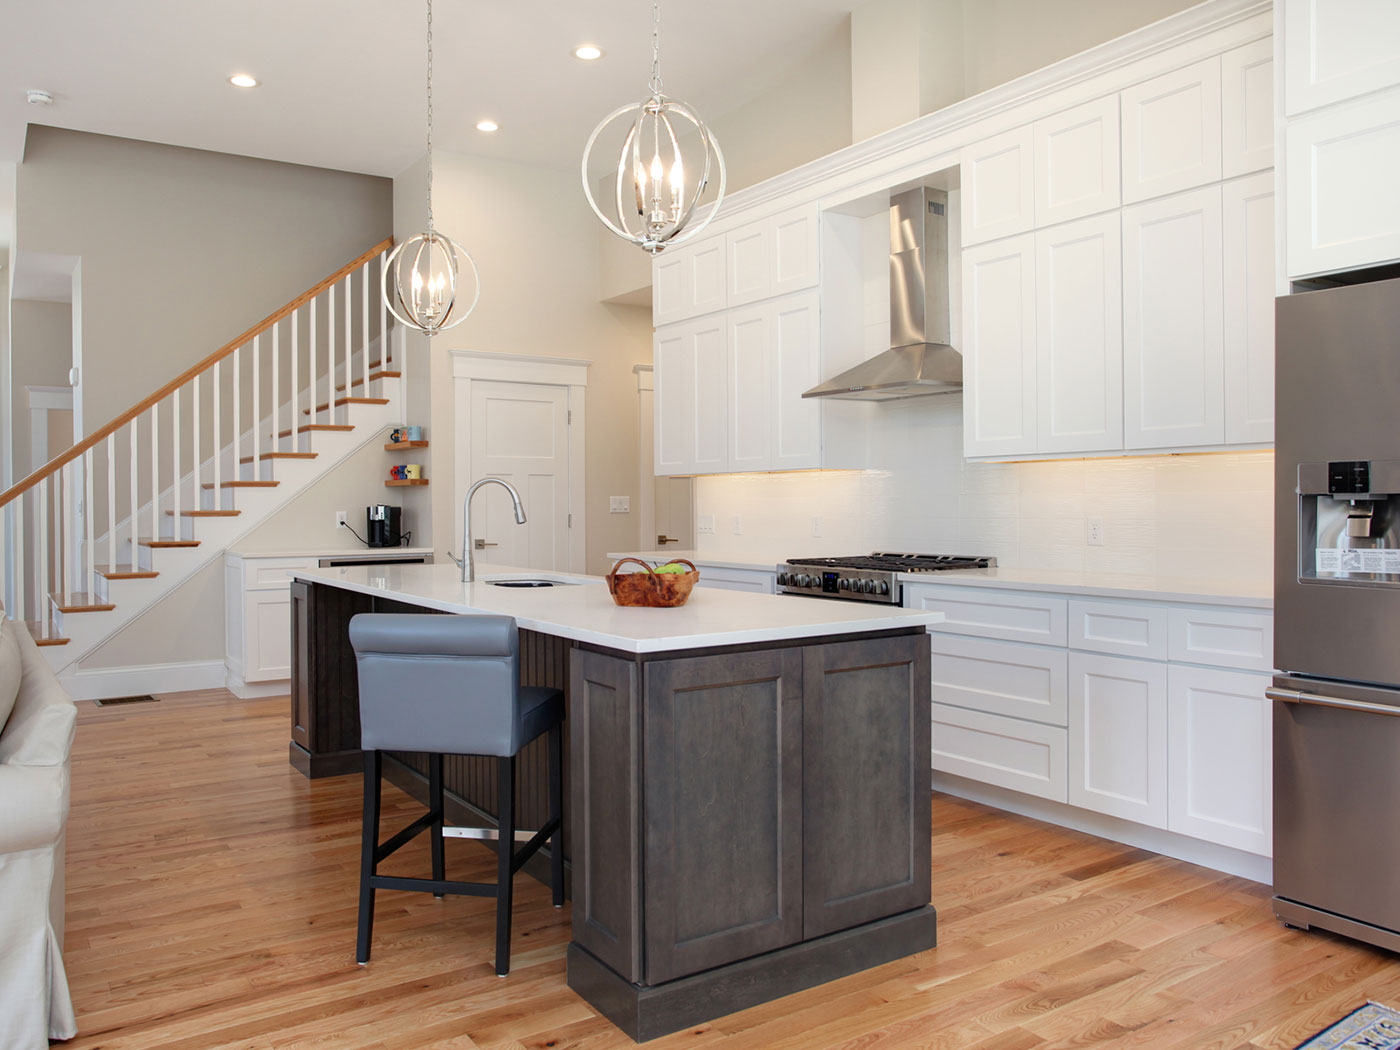 Standard Kitchen Cabinets Brooklyn White & Slate - Craftworks Custom Cabinetry - Rochester, NY